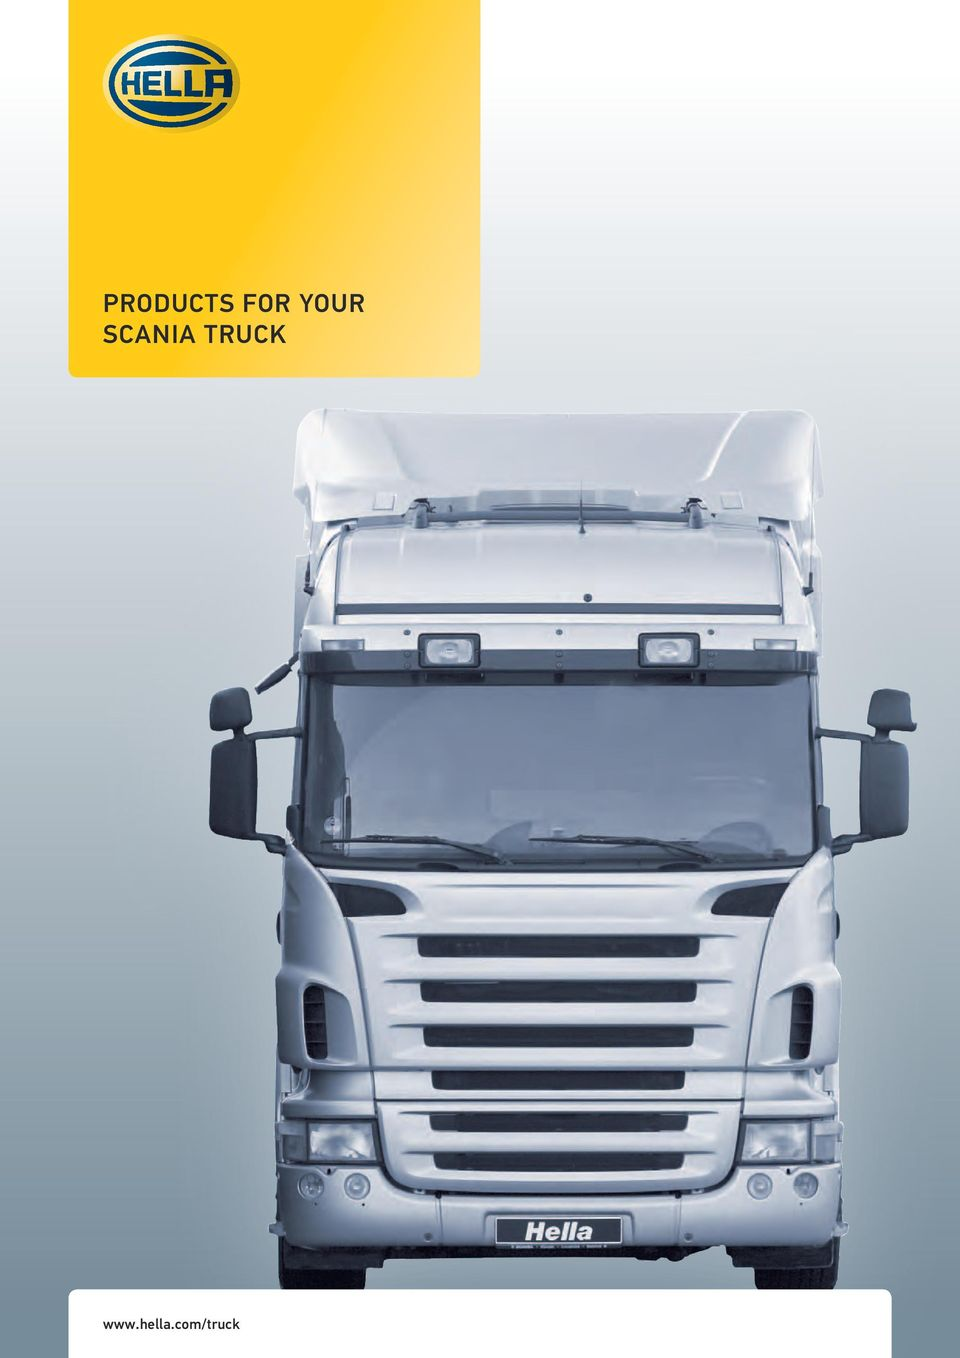 Products For Your Pdf Scania 114 Wiring Diagram 2 Lighting Page 3 31 Starter Generator Flasher Relays Water Pump Wiper Blade Cap Fuel Tank Mirror Glasses Air Conditioning